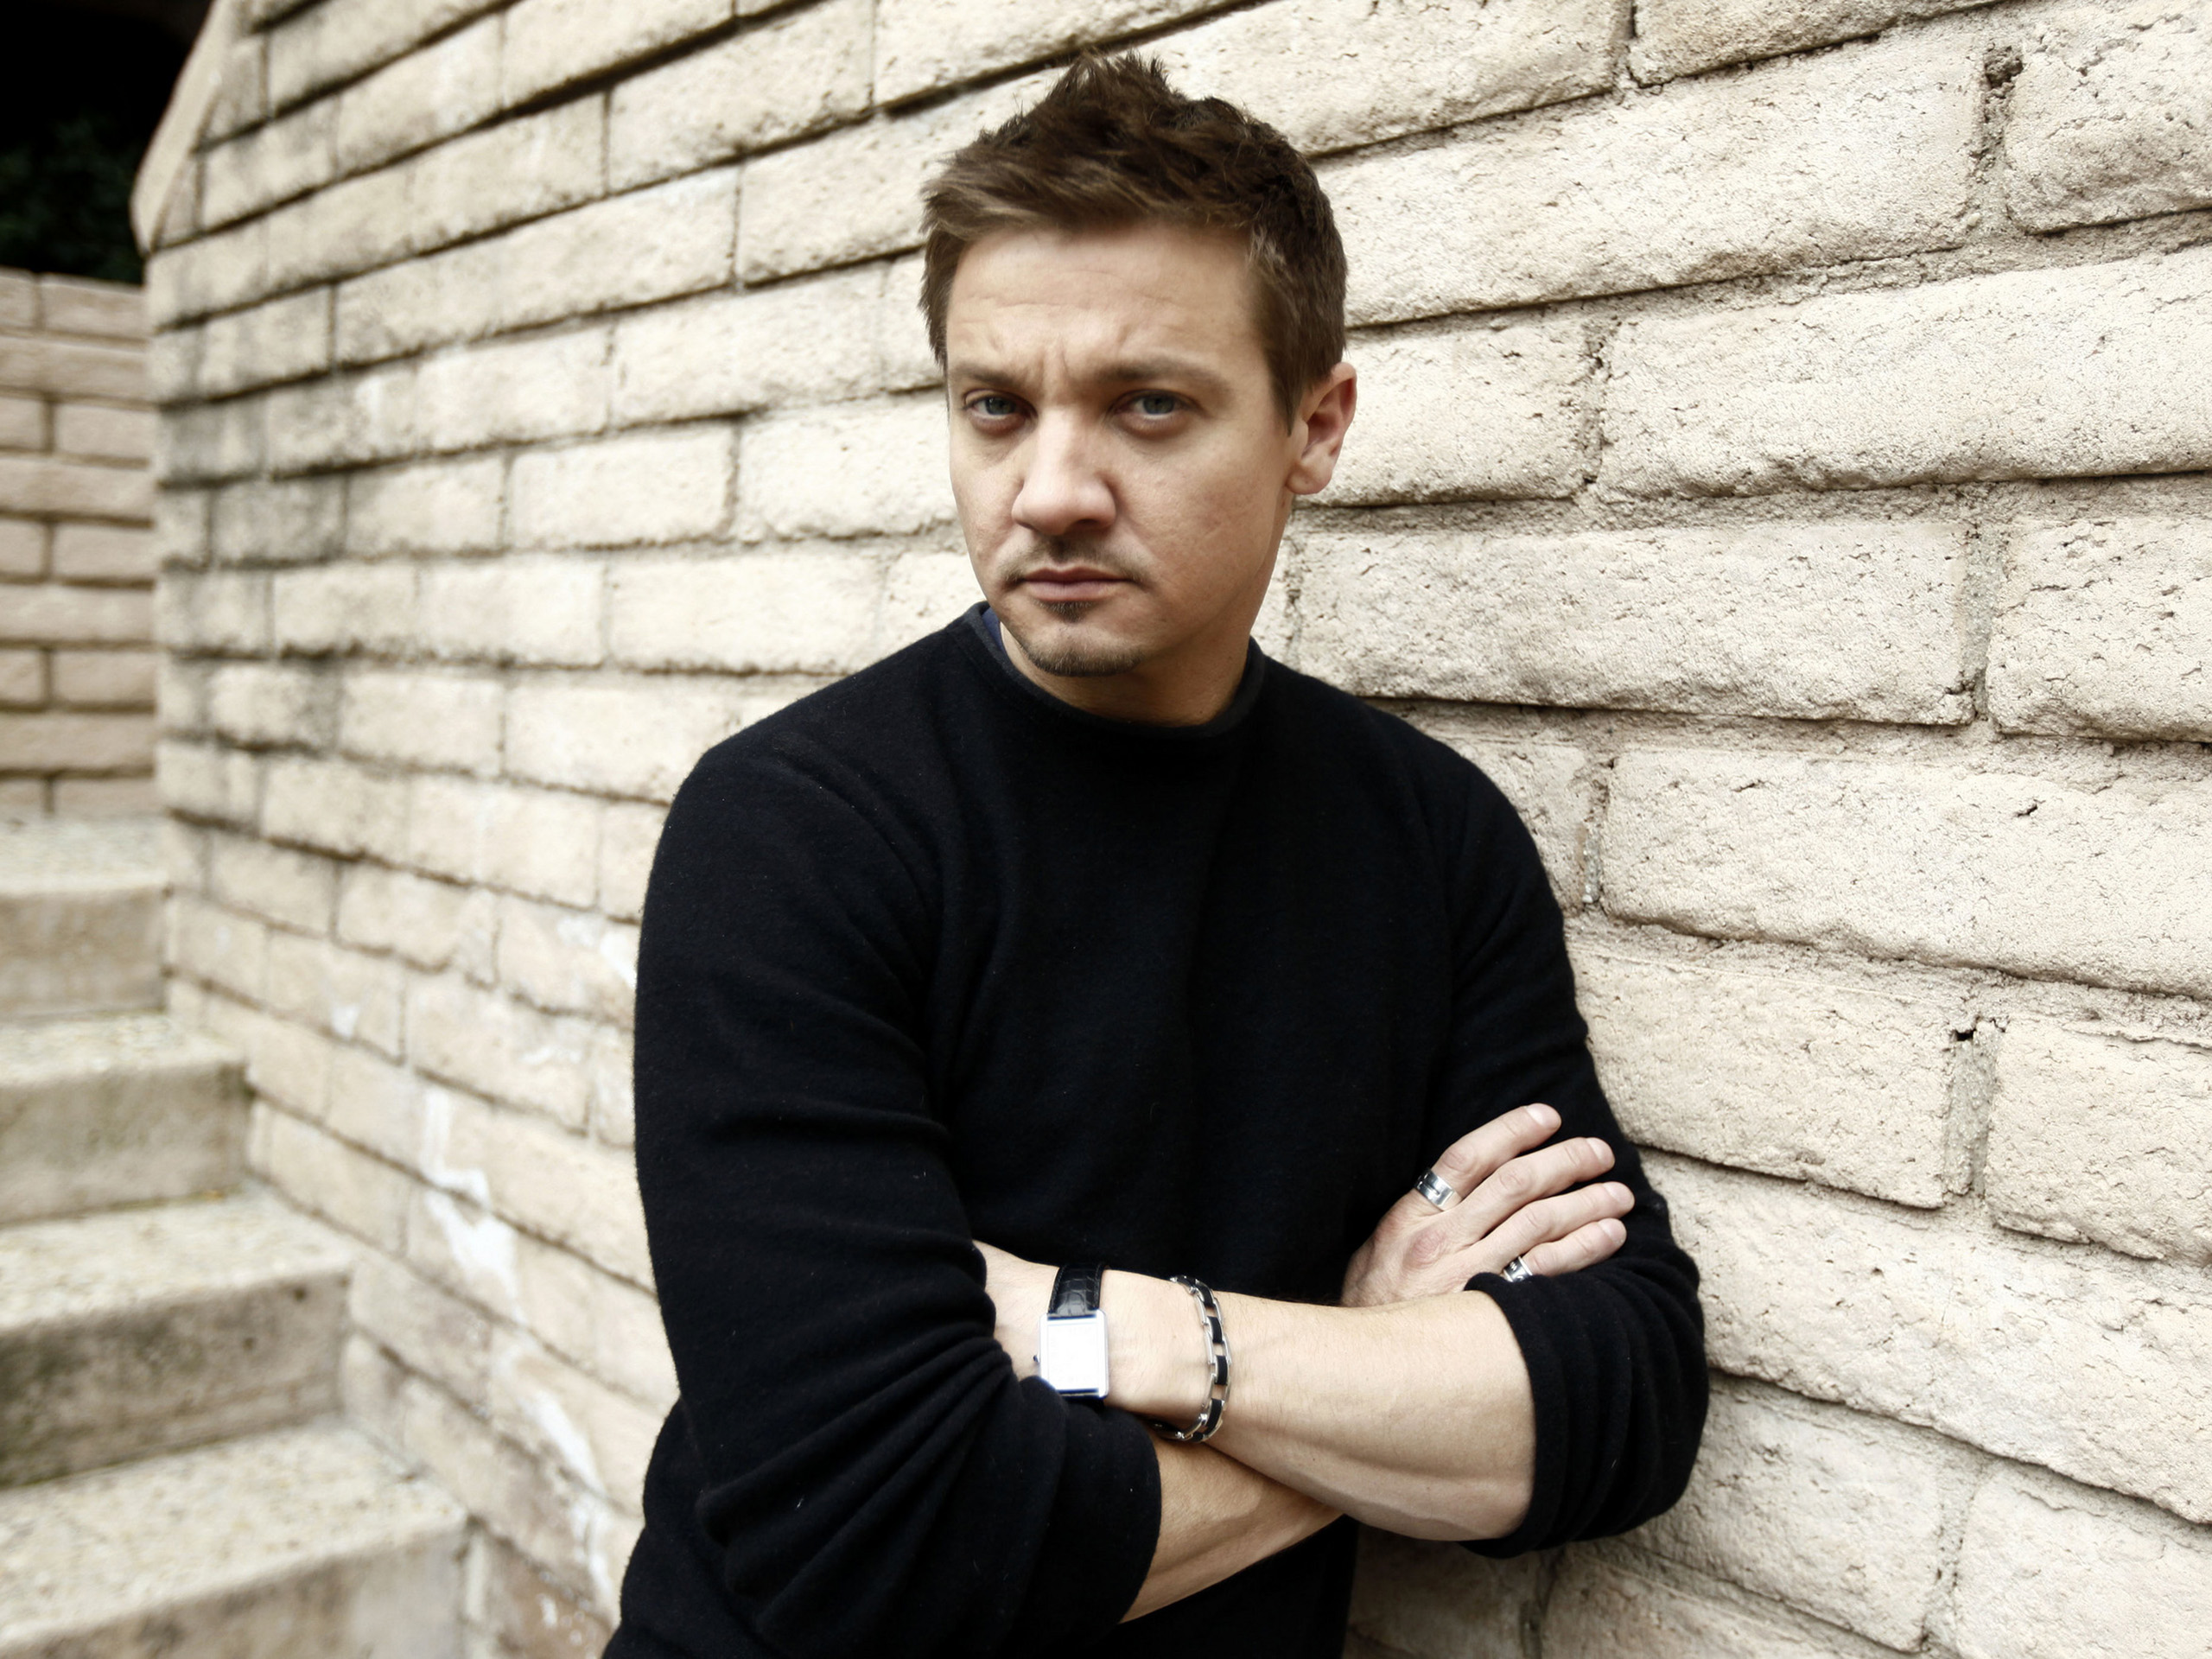 2560x1920 - Jeremy Renner Wallpapers 7